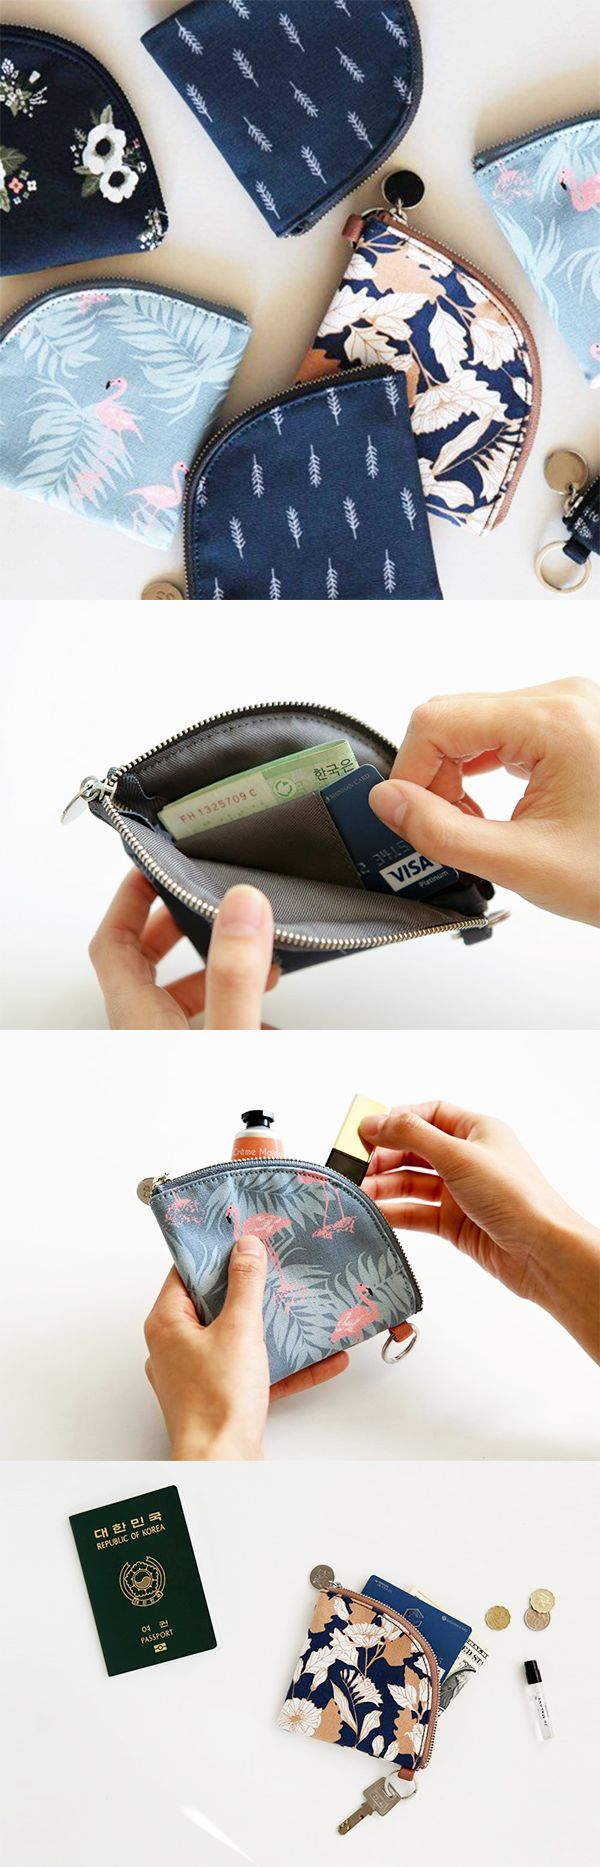 This Dailylike Coin Pouch will change how you carry your money! No more lugging around a big wallet just to run errands. It's light & has unique fan shape so you can carry more than just your loose change. There's a card slot inside where you can put your ID card, credit cards, & bus pass. Wrap your bills around it to keep their shape & stay organized! You can also fit other items like lip balm & earbuds too. Pick from 4 lovely styles & slip this cute pouch on your keys, then you're ready to…